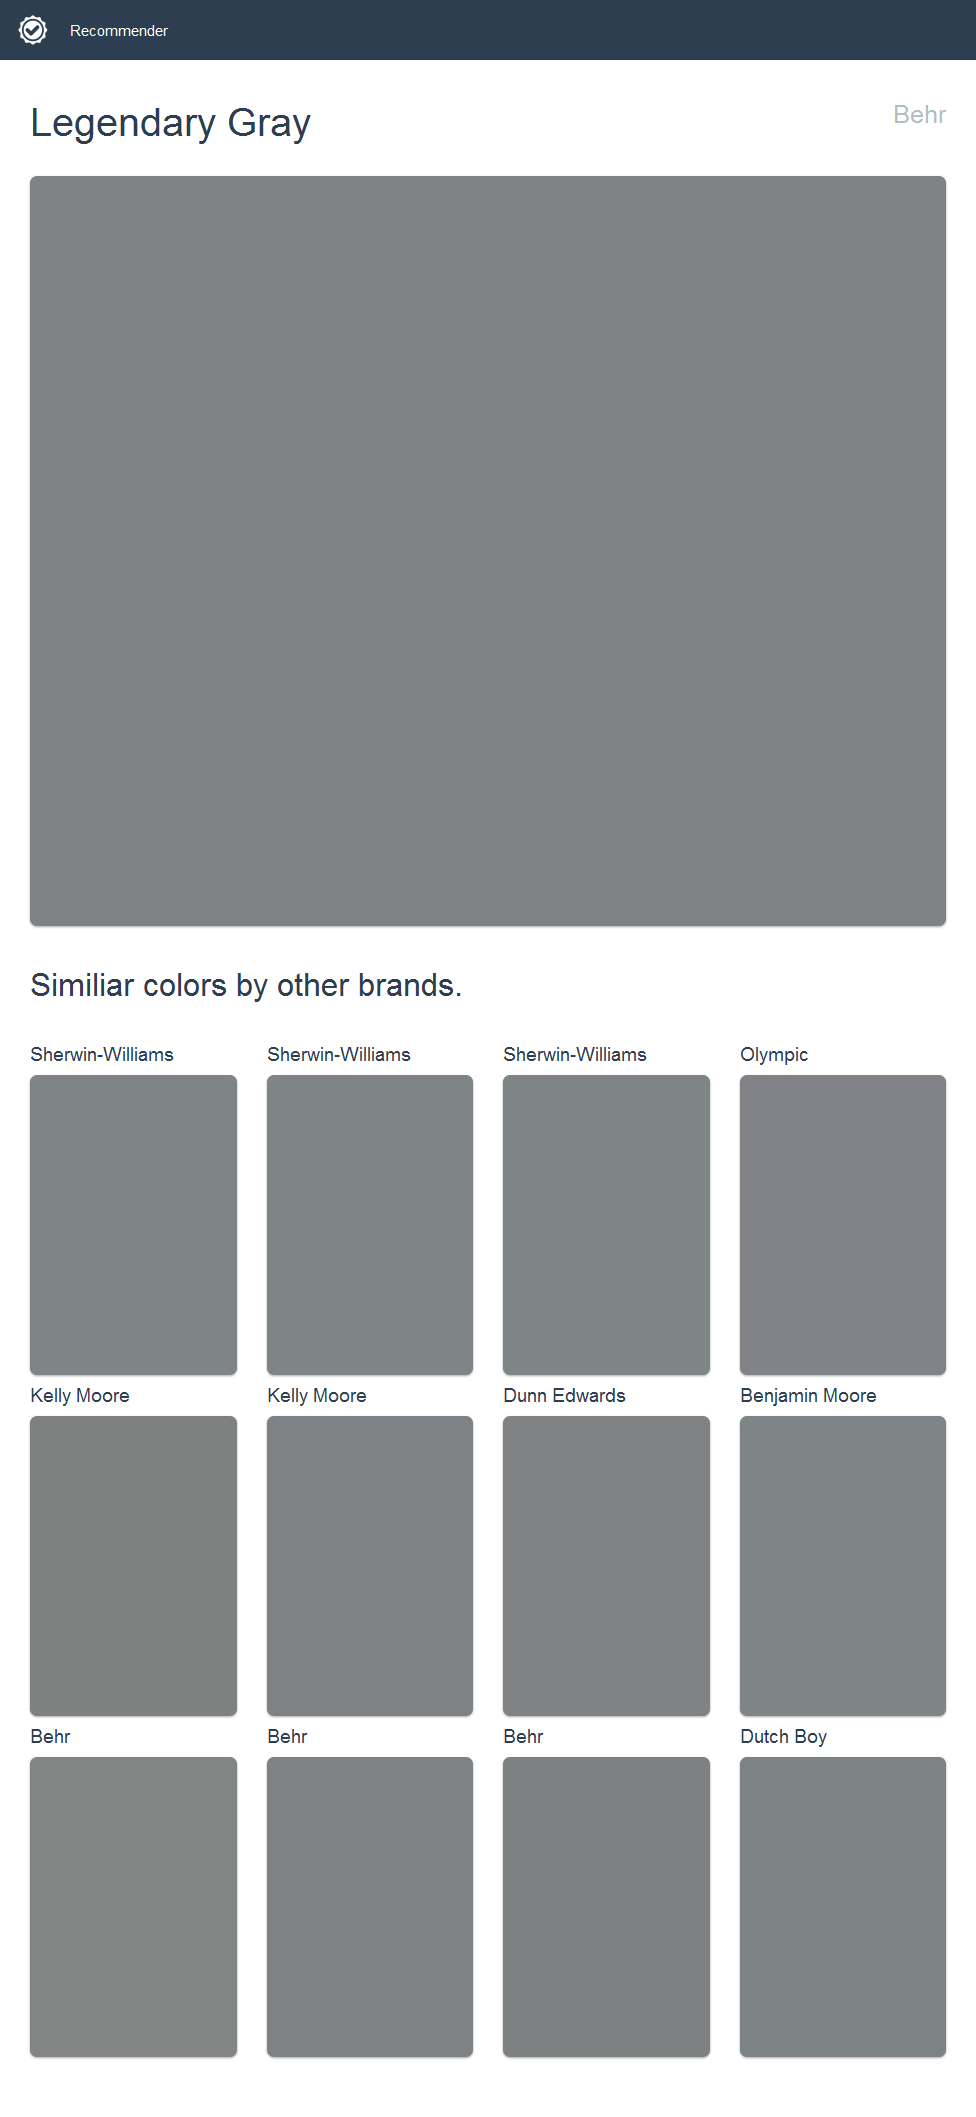 Legendary Gray Behr Click The Image To See Similiar Colors By Other Brands